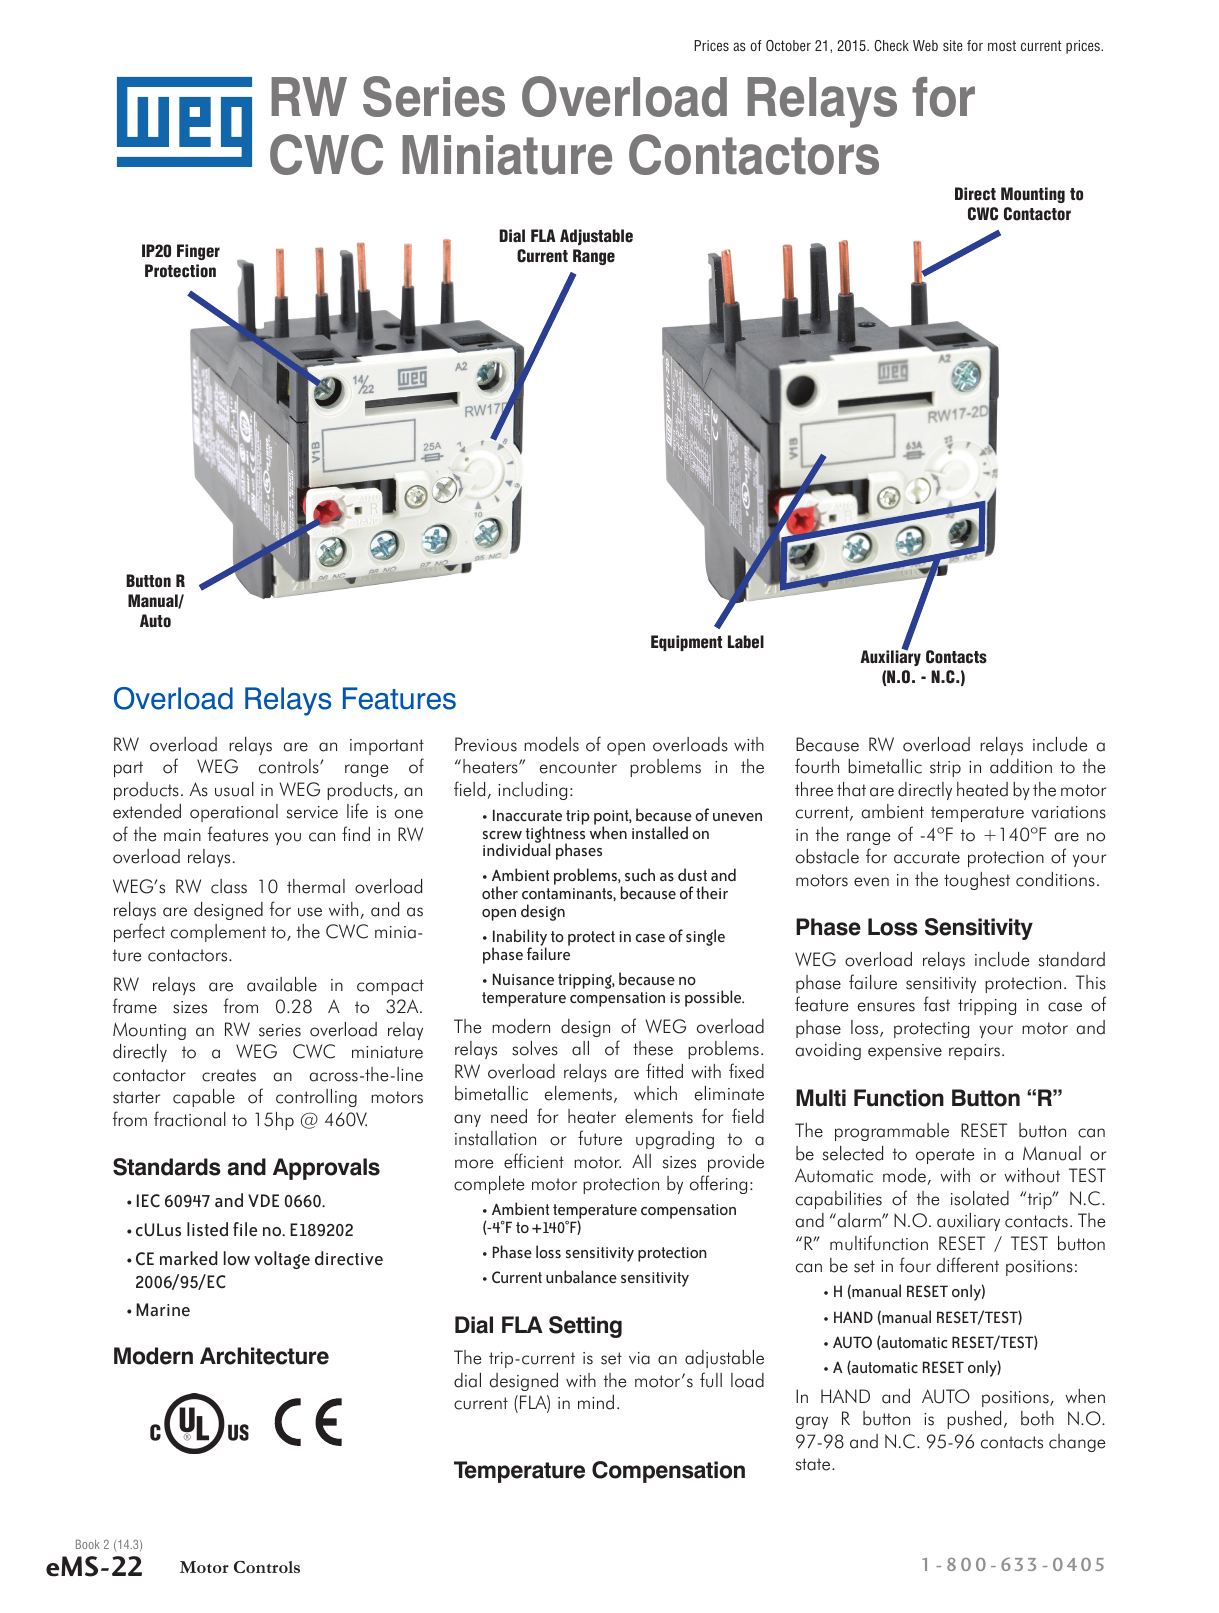 WEG RW Series Overload Relays Technical Specs